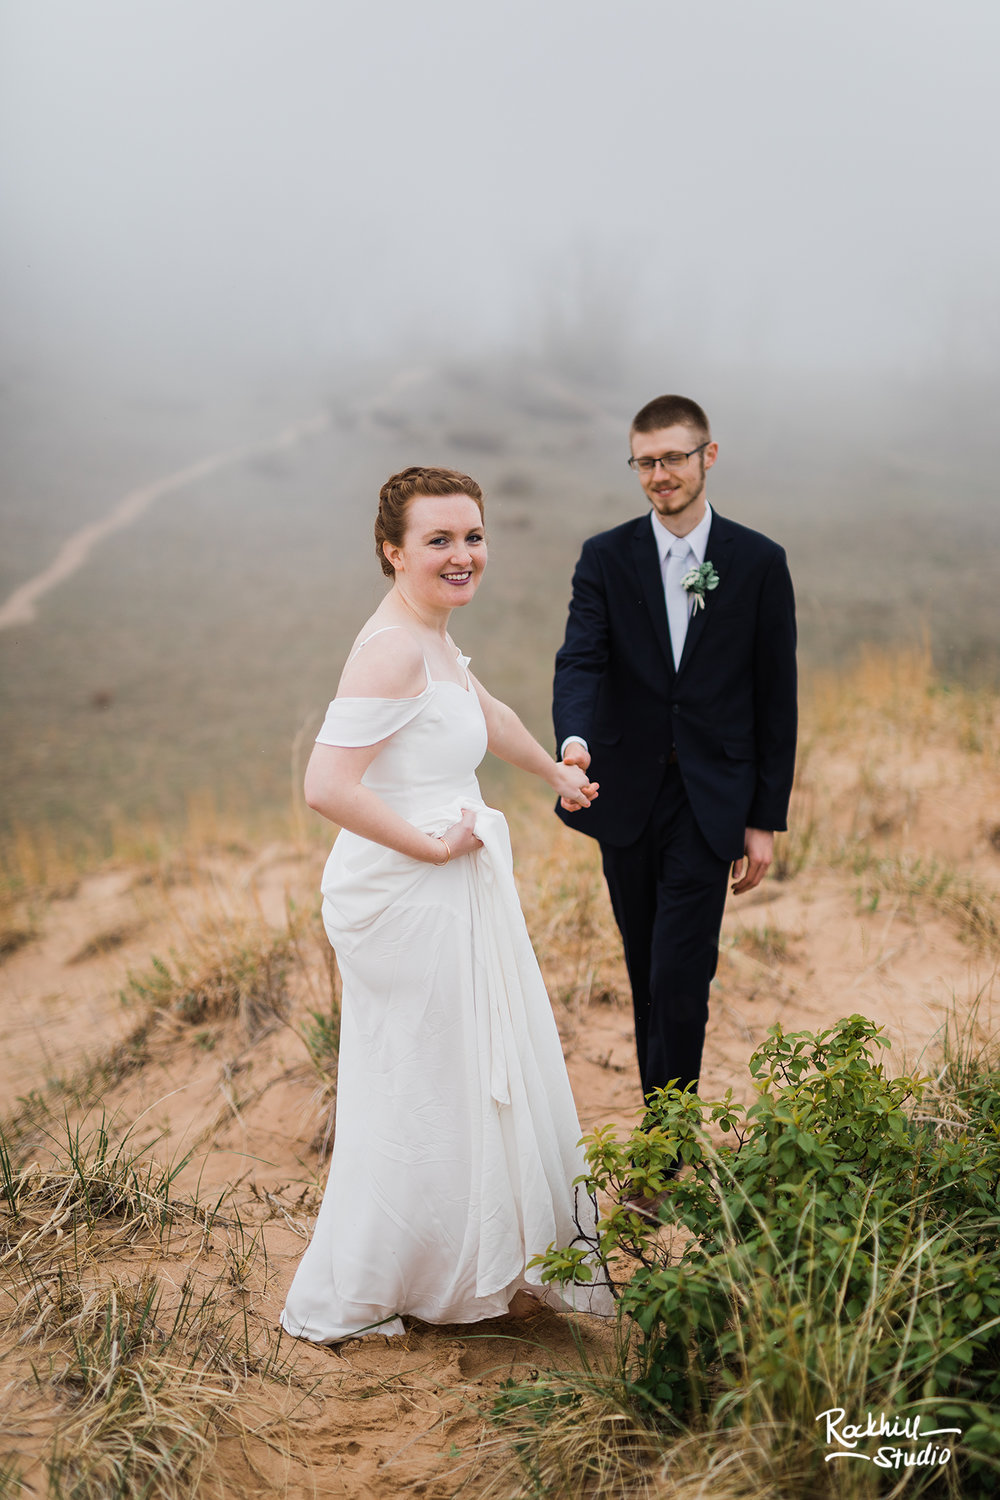 traverse_city_wedding_photographer_sleeping_bear_dunes_rockhill_fog_1a.jpg